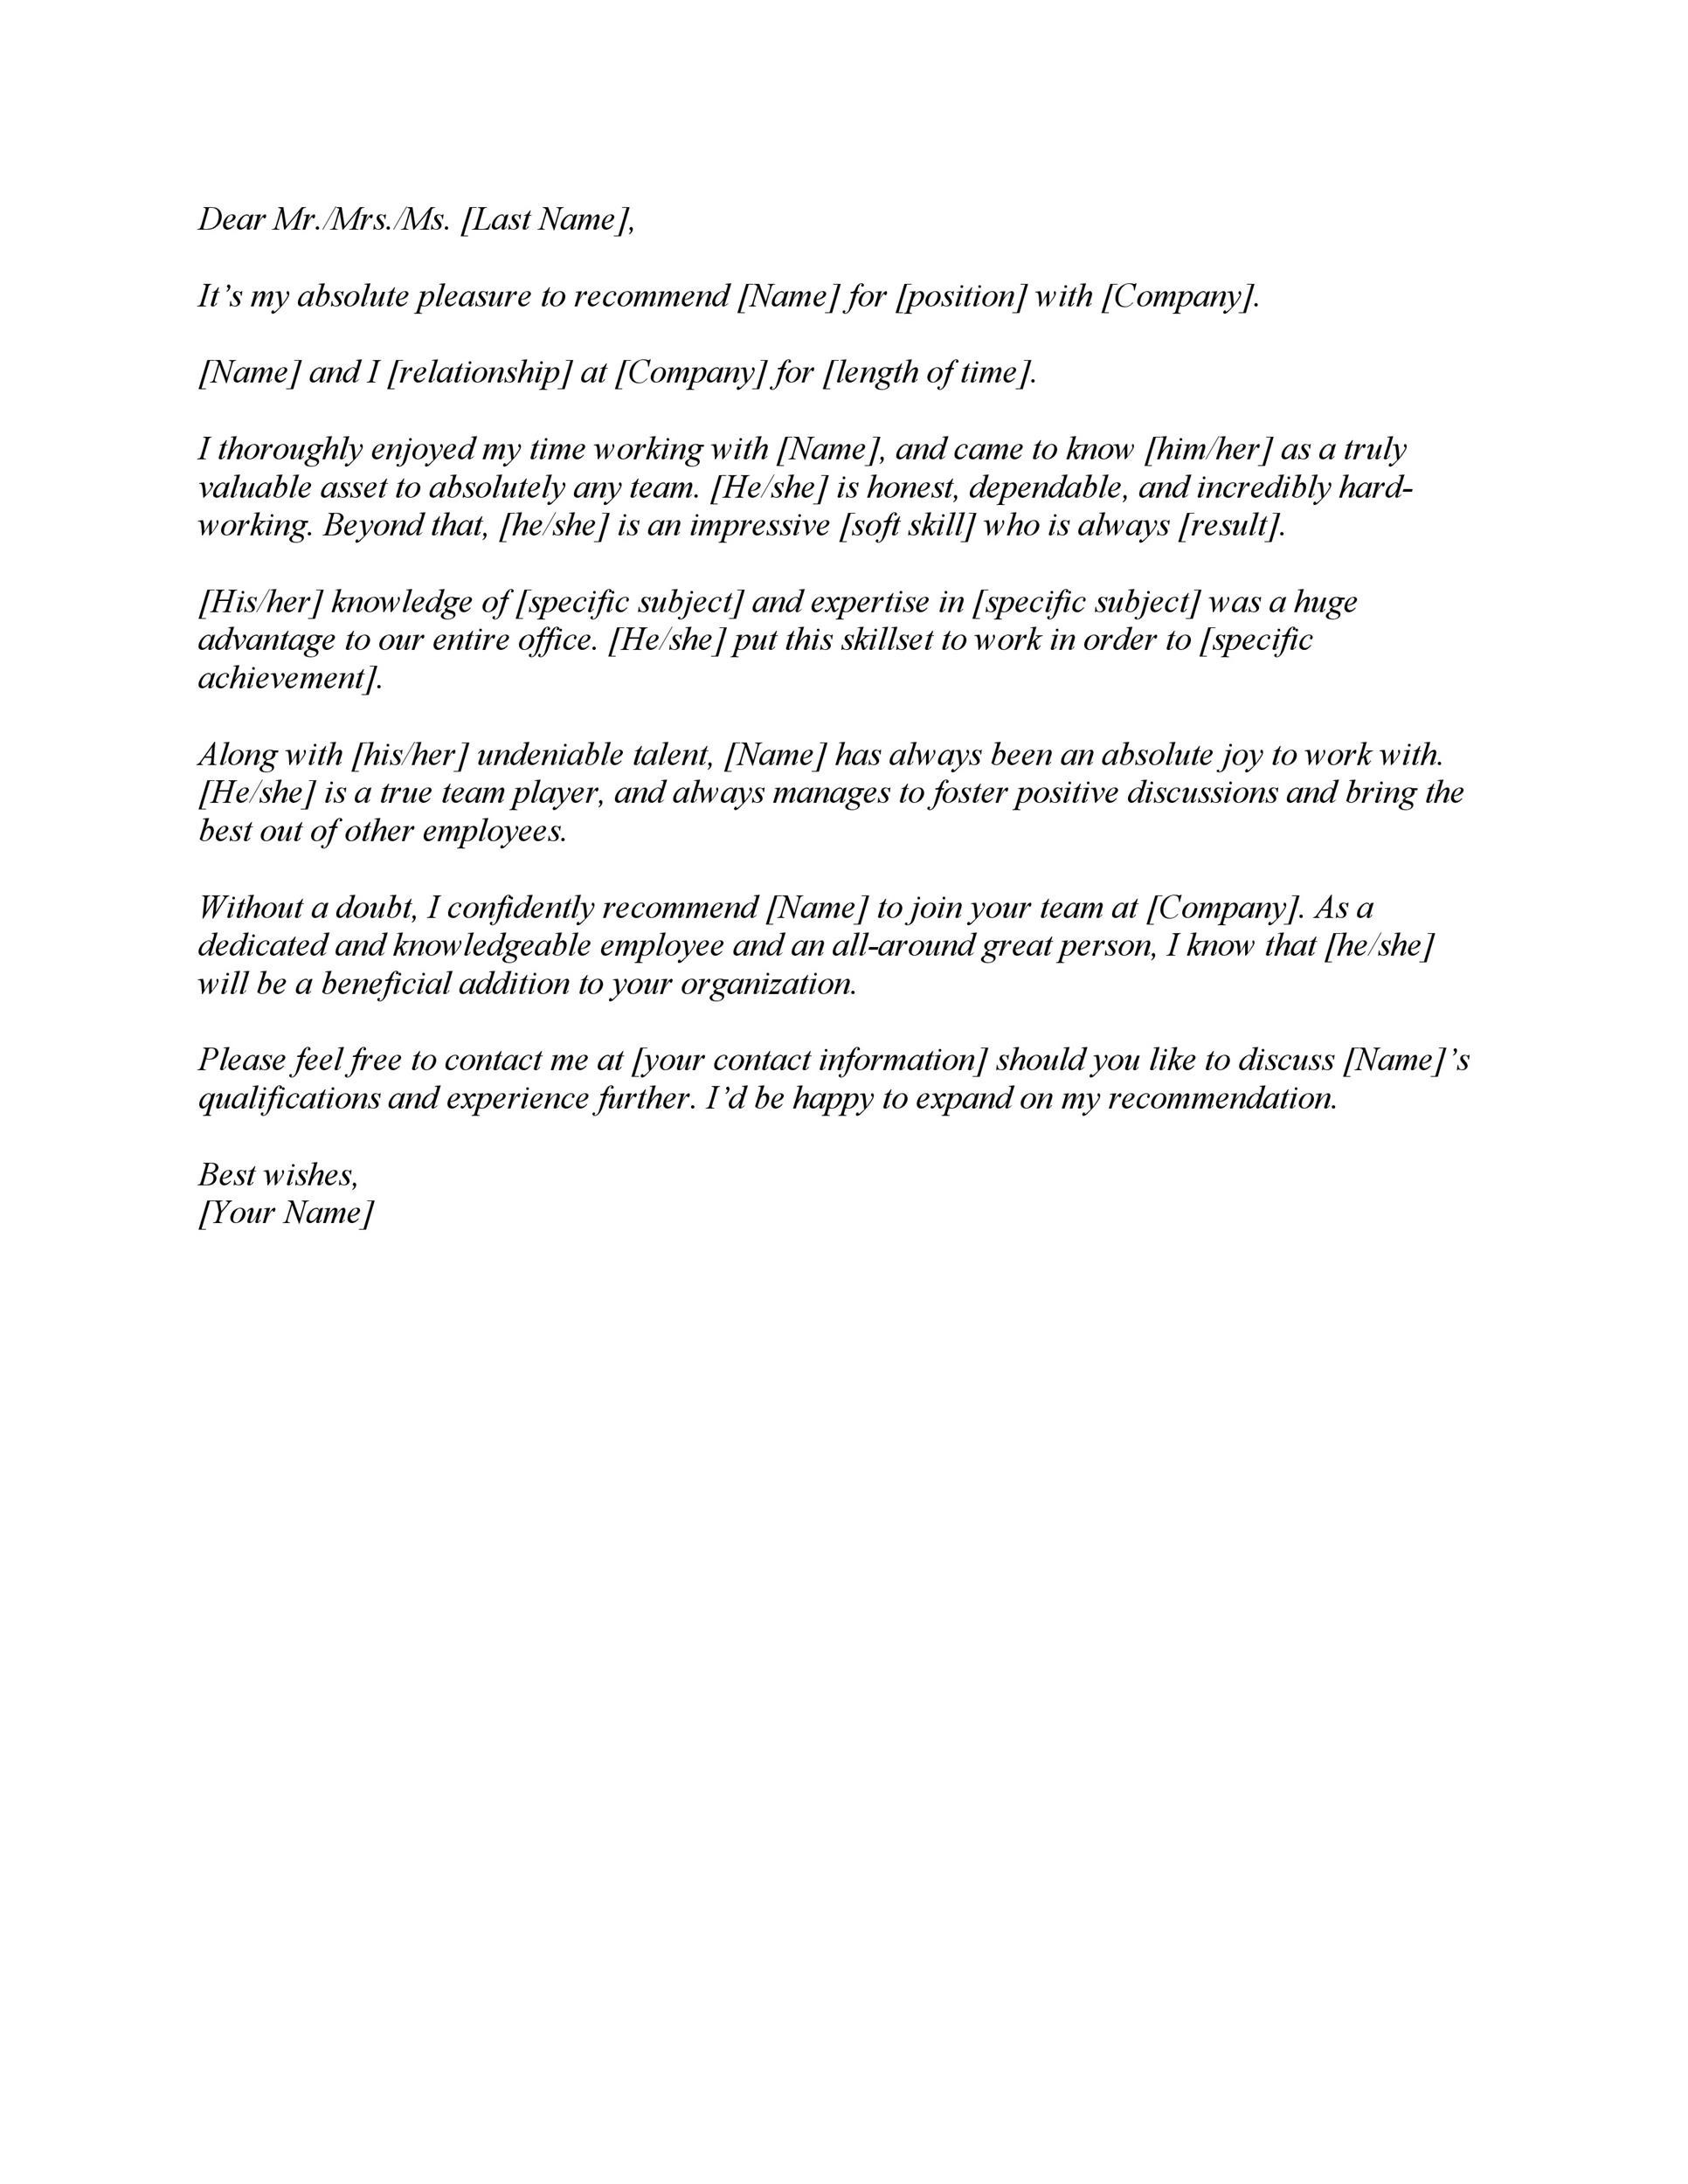 Writing Your Own Letter Of Recommendation Template from templatelab.com